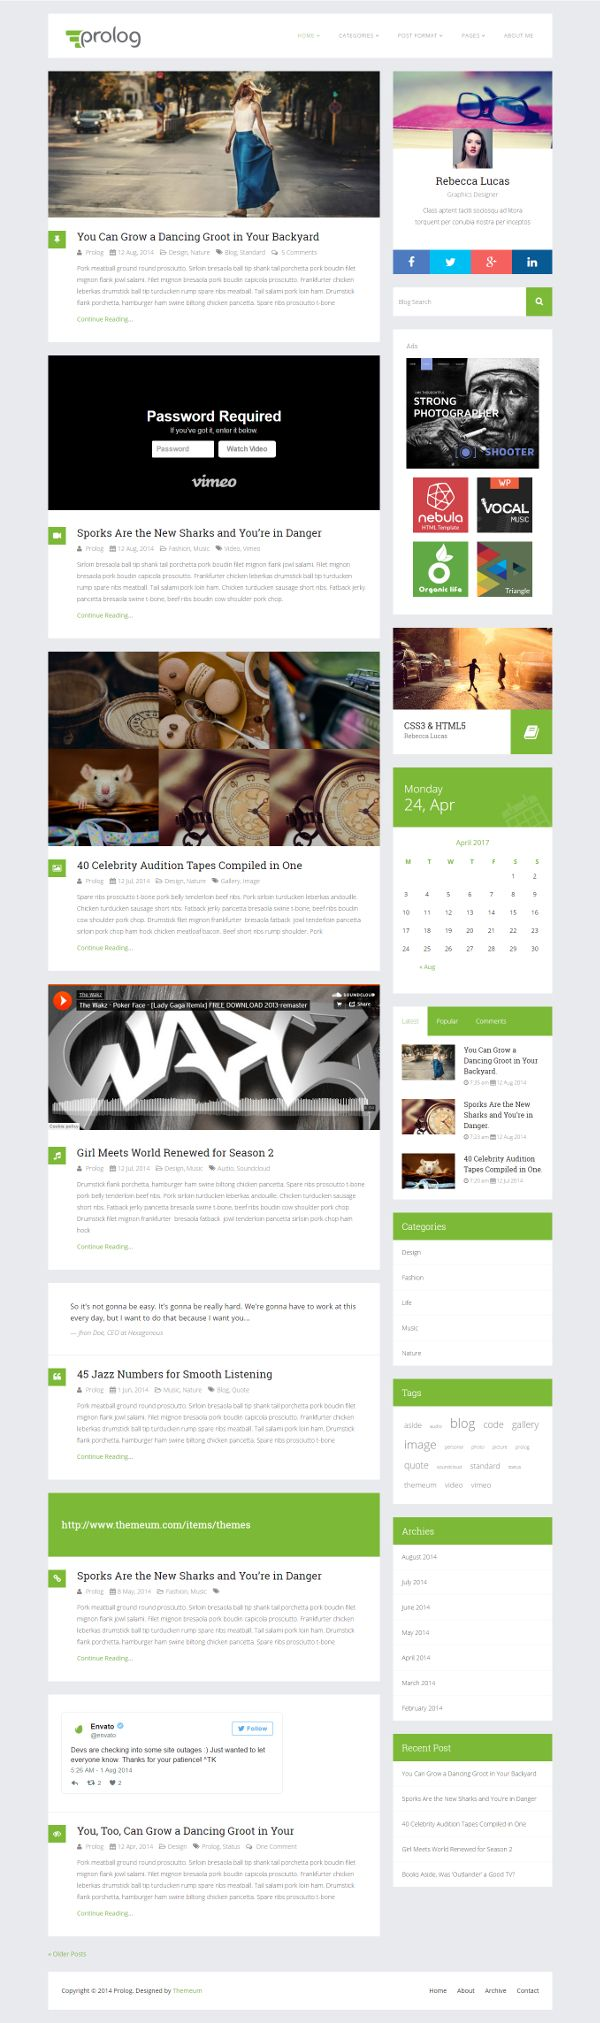 Prolog - Theme WordPress Gratis Untuk Blog